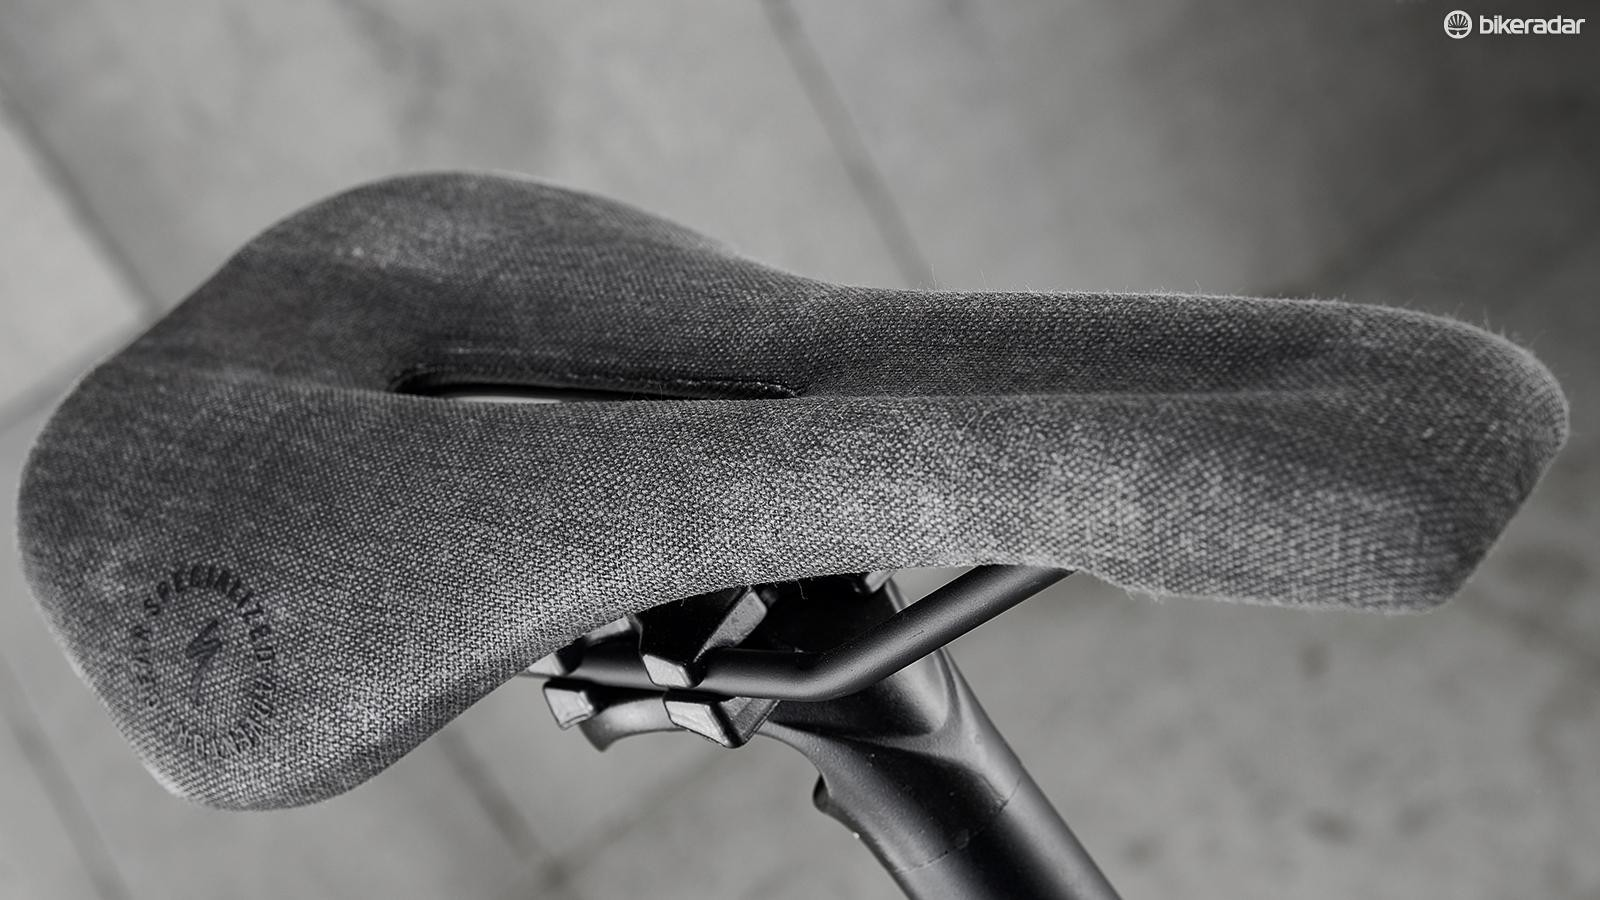 The Anza saddle's material finish stops you sliding around